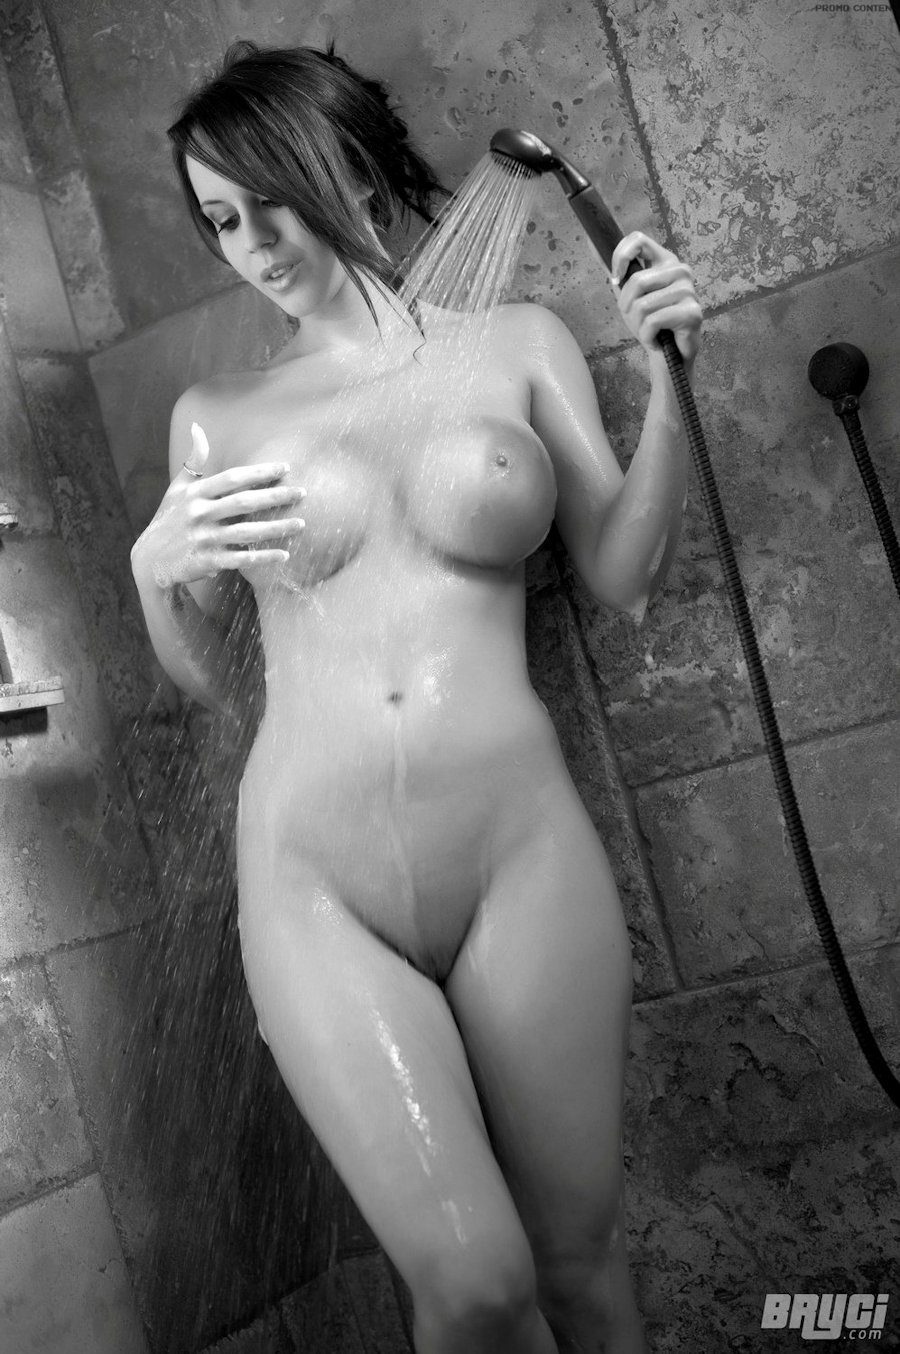 girls nude in shower Thumbs